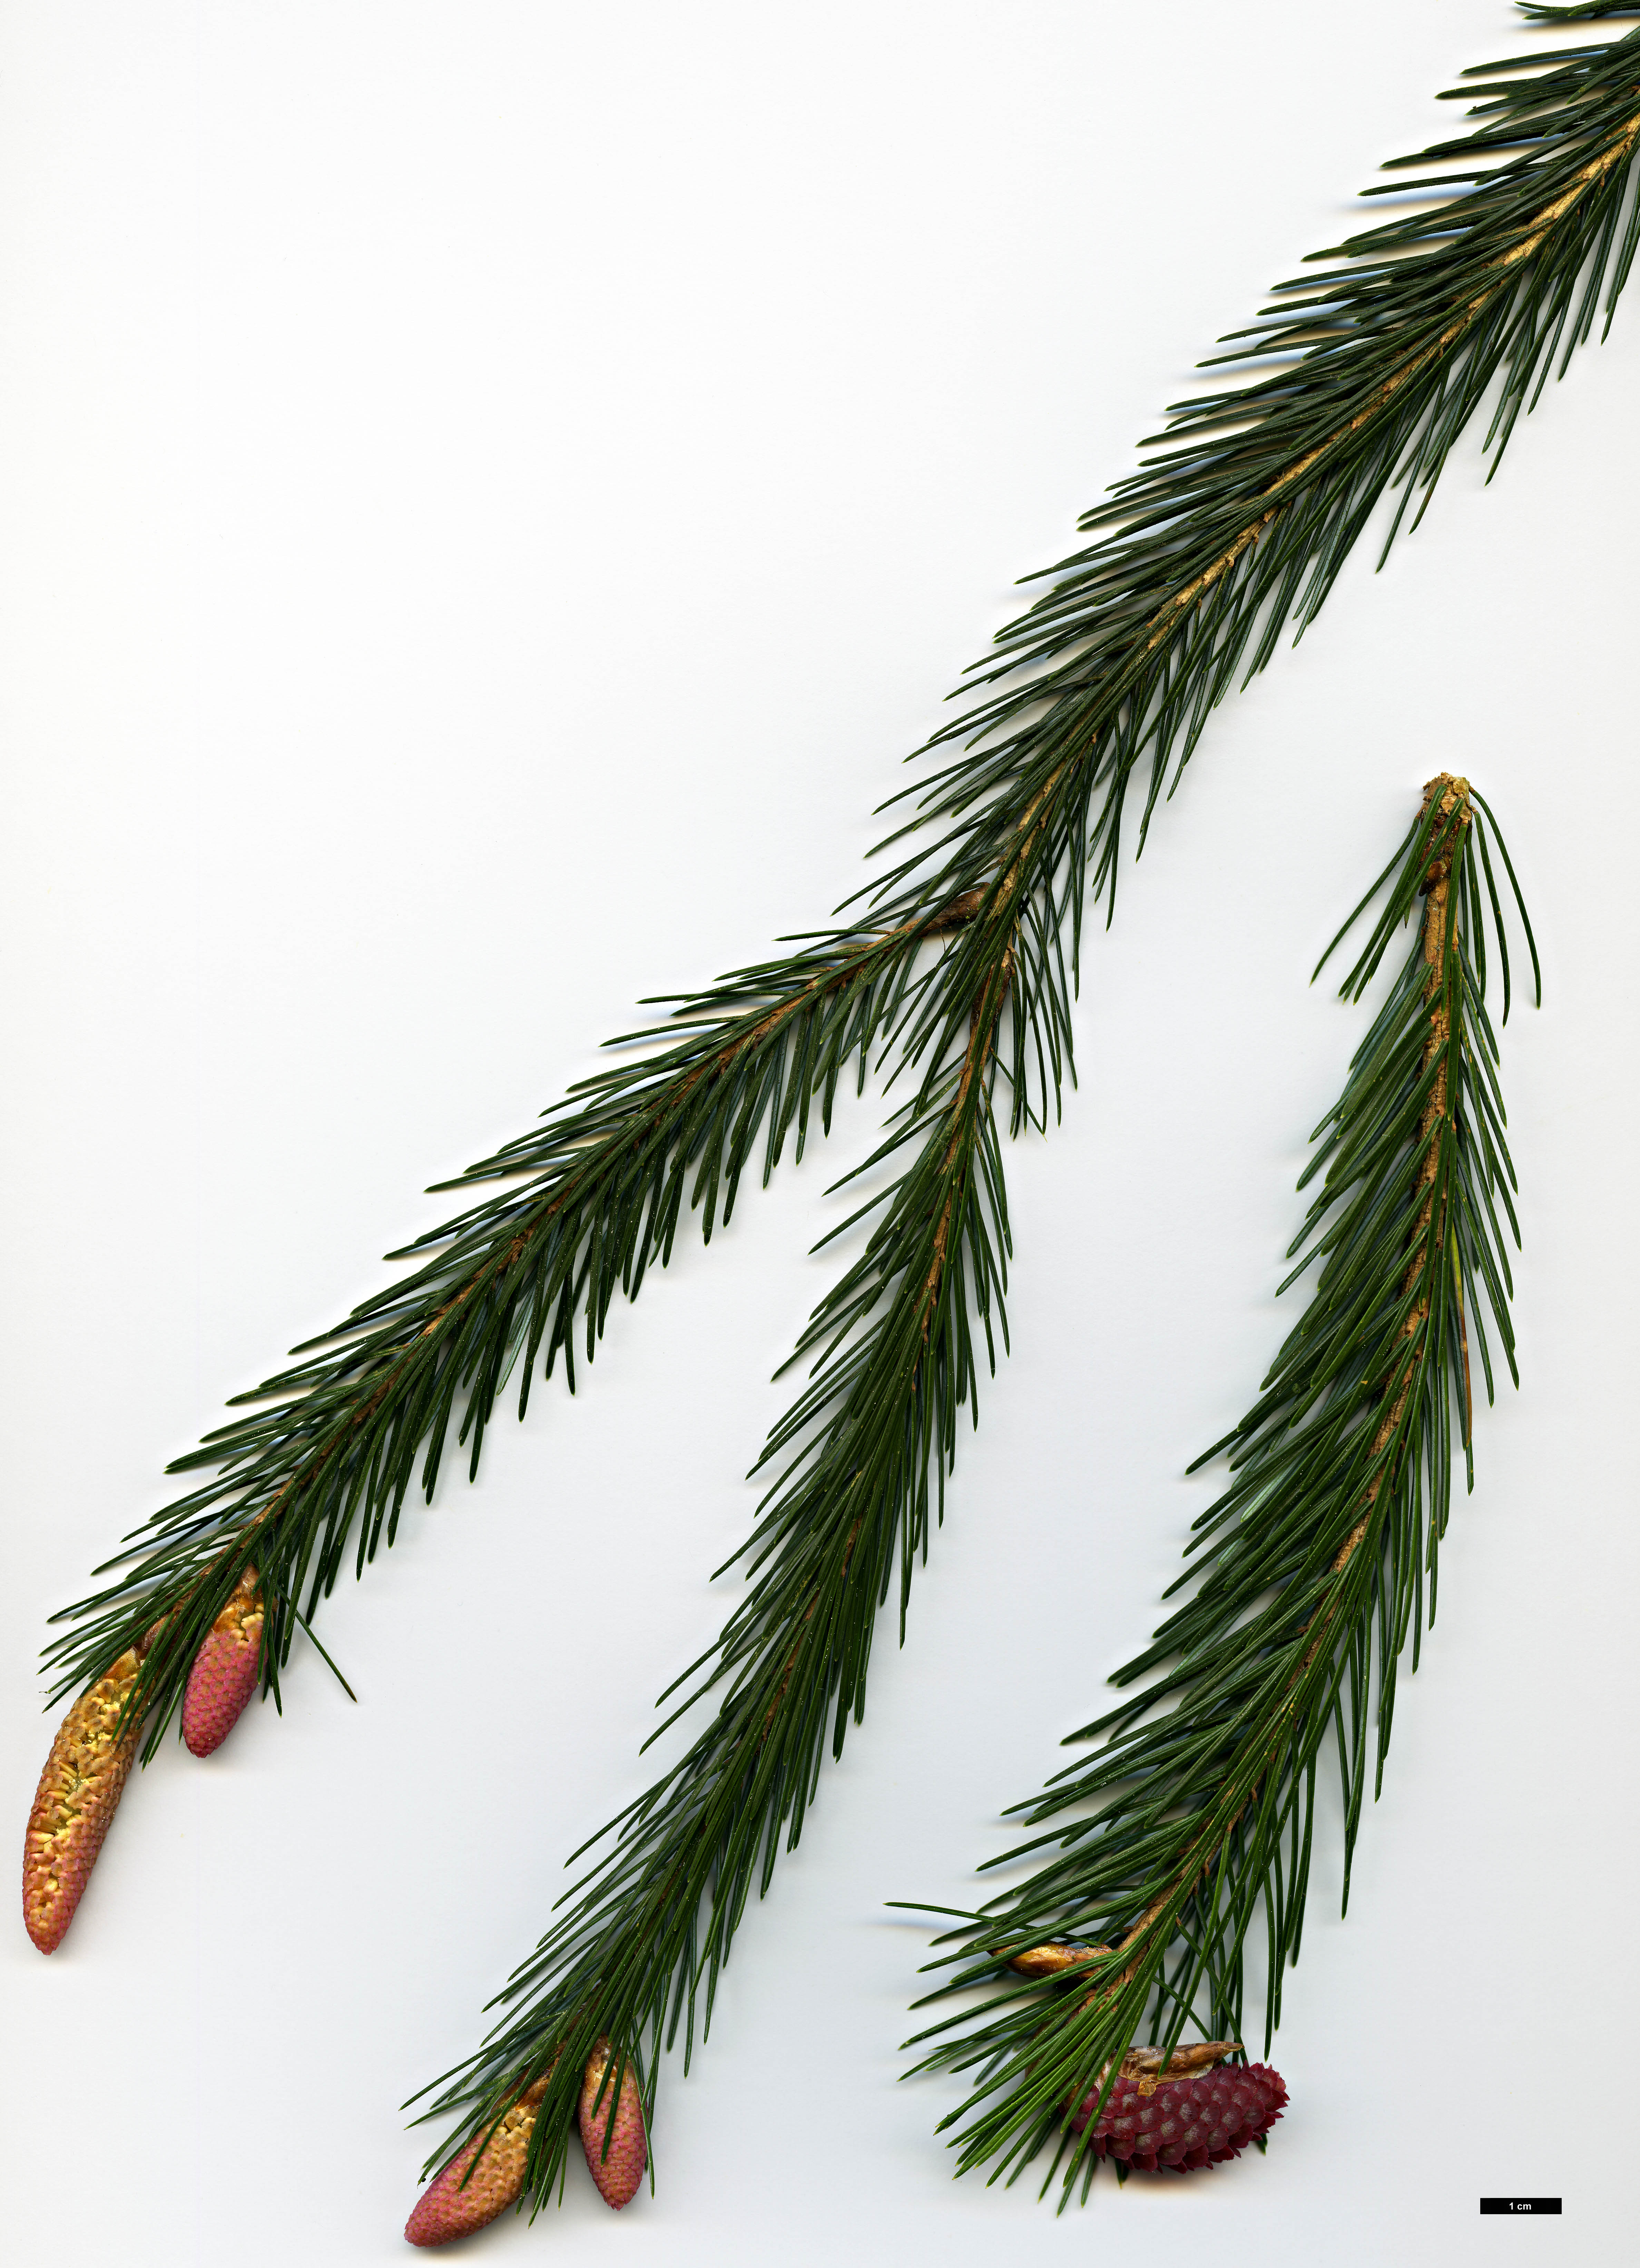 High resolution image: Family: Pinaceae - Genus: Picea - Taxon: spinulosa